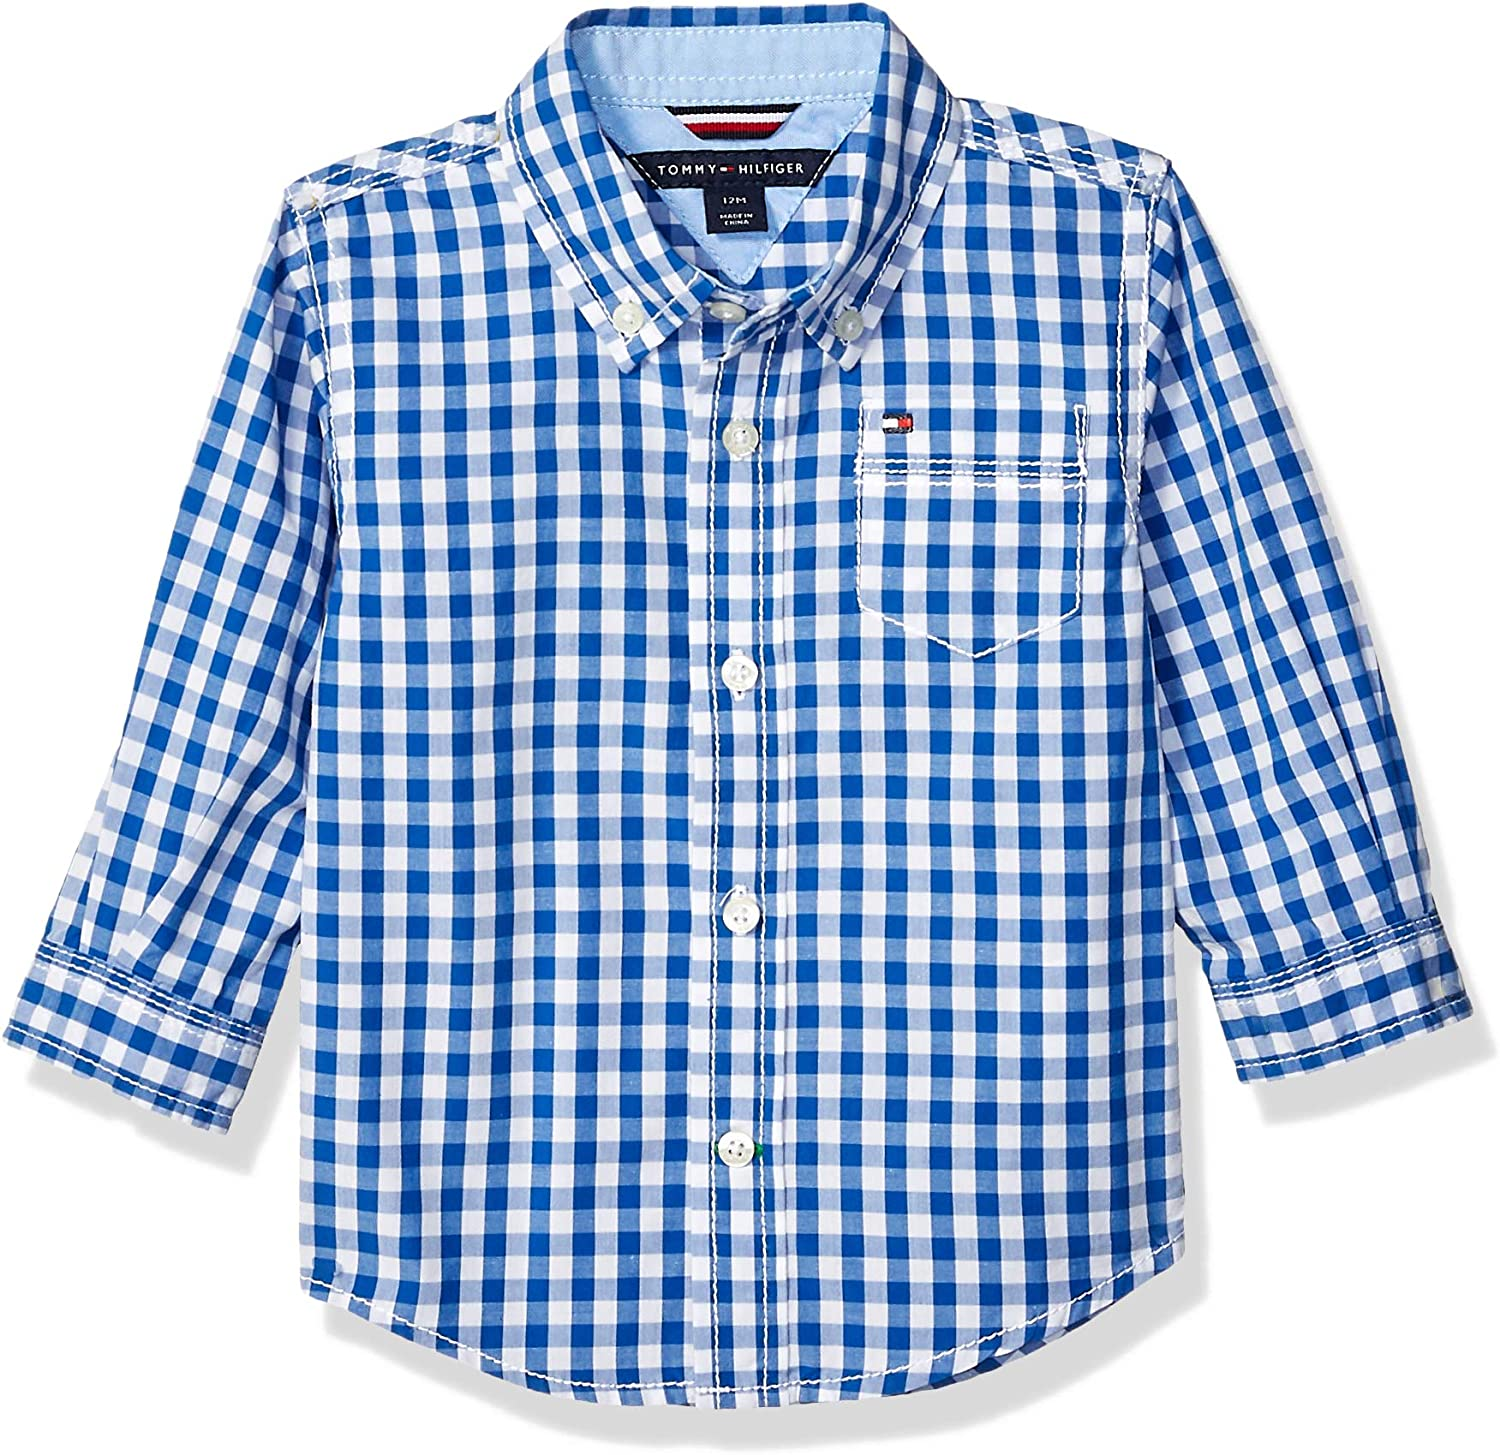 Tommy Hilfiger Boys Easy-to-use Long Sleeve Woven Cotton Shirt Finally popular brand Collar 100%